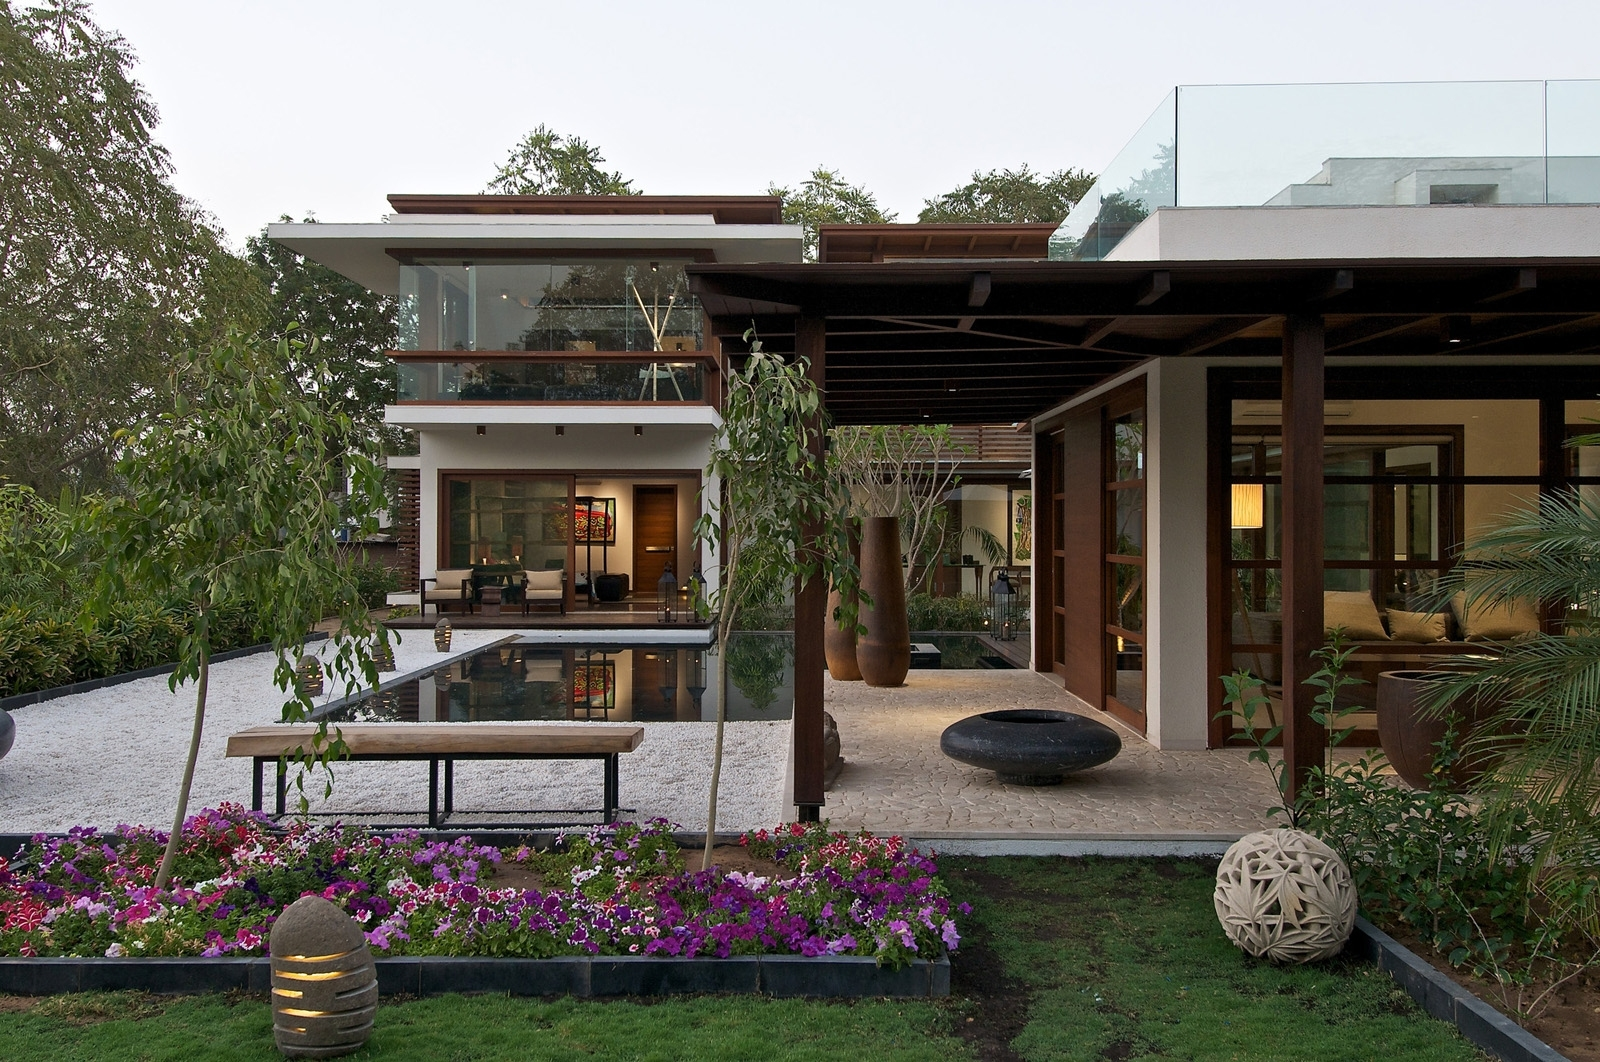 Timeless Contemporary House In India With Courtyard Zen Garden intended for House Design With Garden India